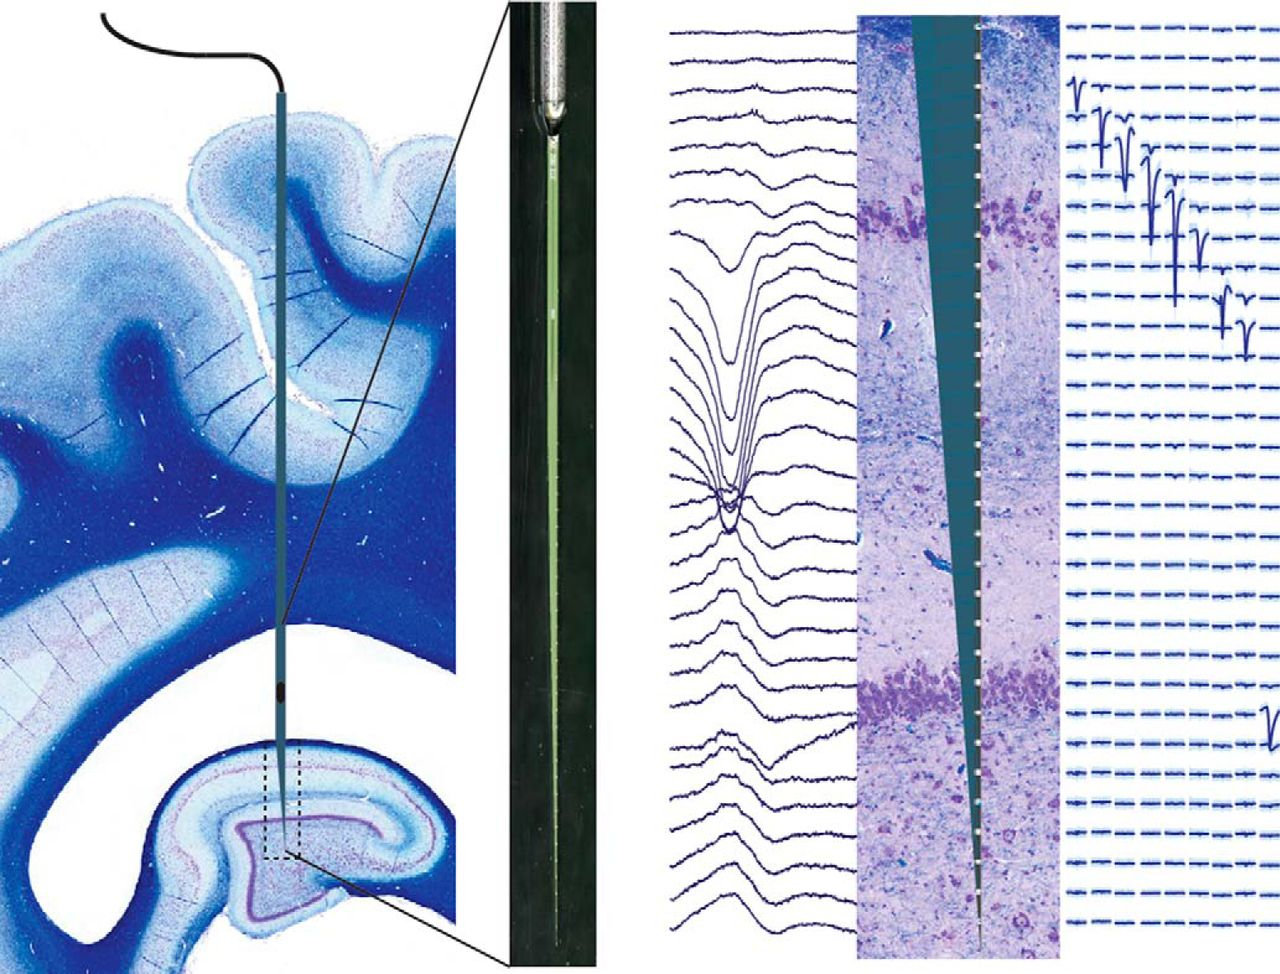 Electrophysiological Signature Reveals Laminar Structure of the